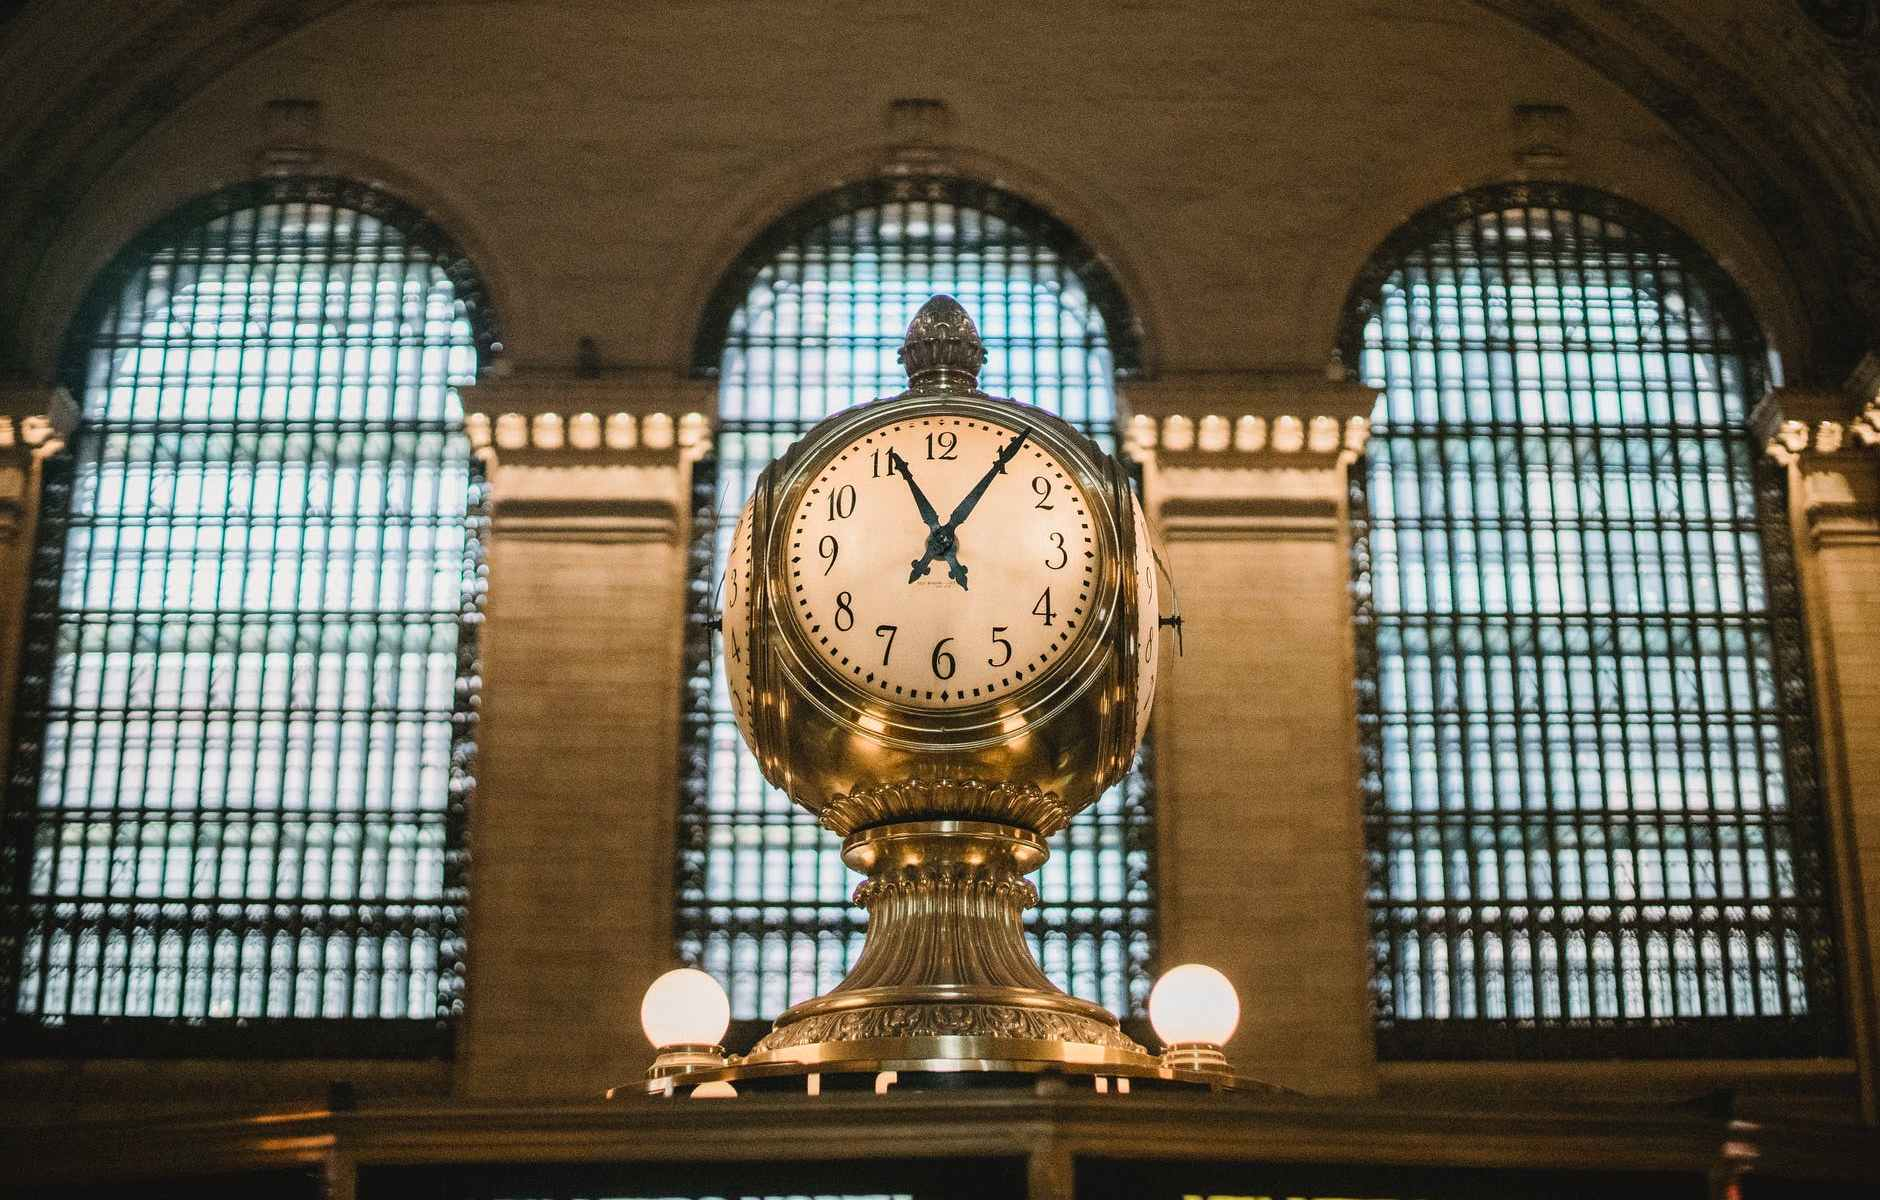 vintage golden clock in aged railway station terminal with arched windows